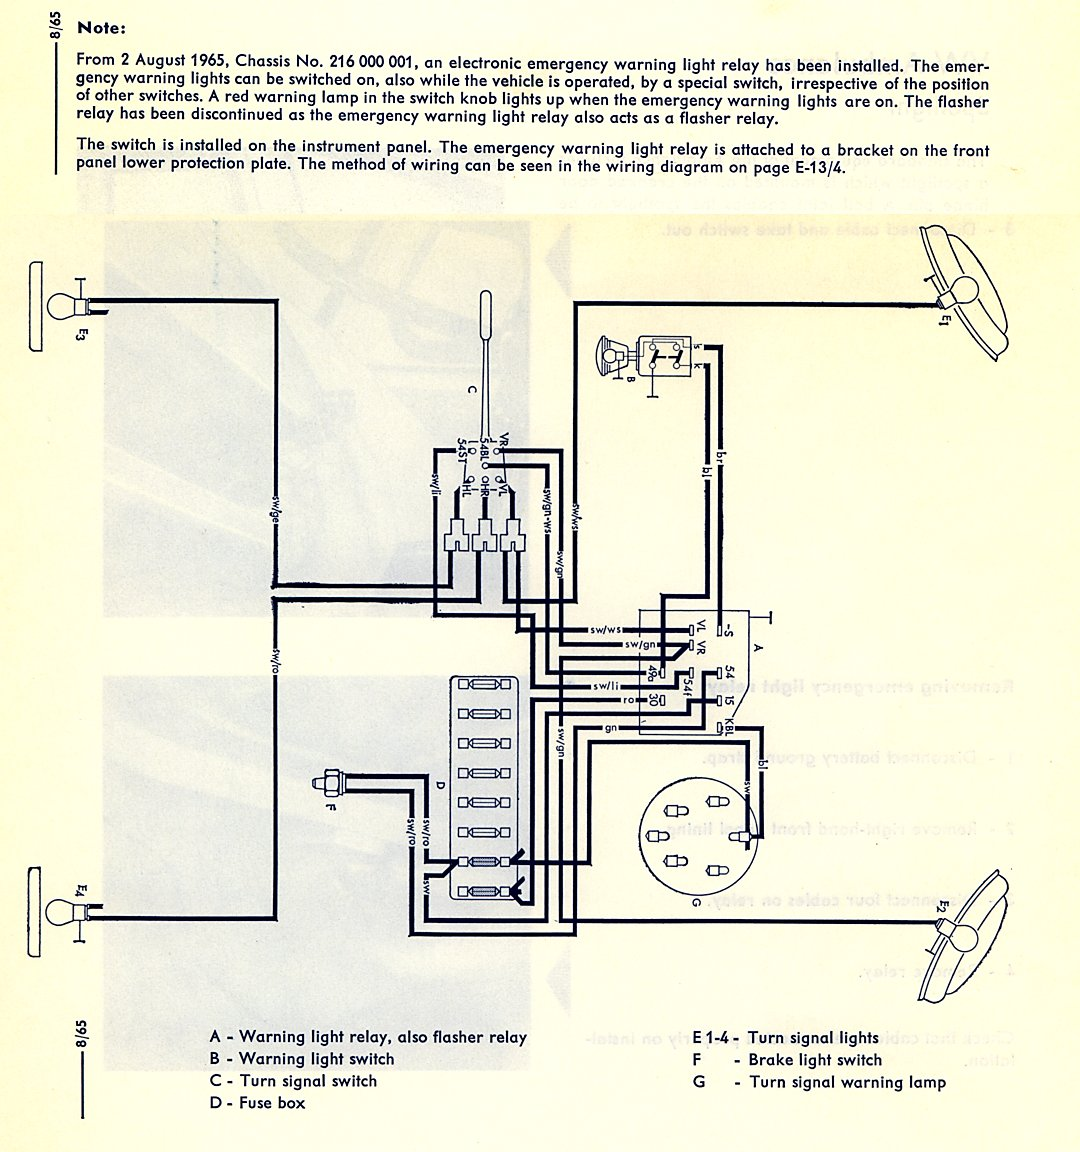 Simple Wiring Diagram For Light Switch 64 Mustang Turn Signal Schematic Archive Of Dodge Rh David Huggett Co Uk